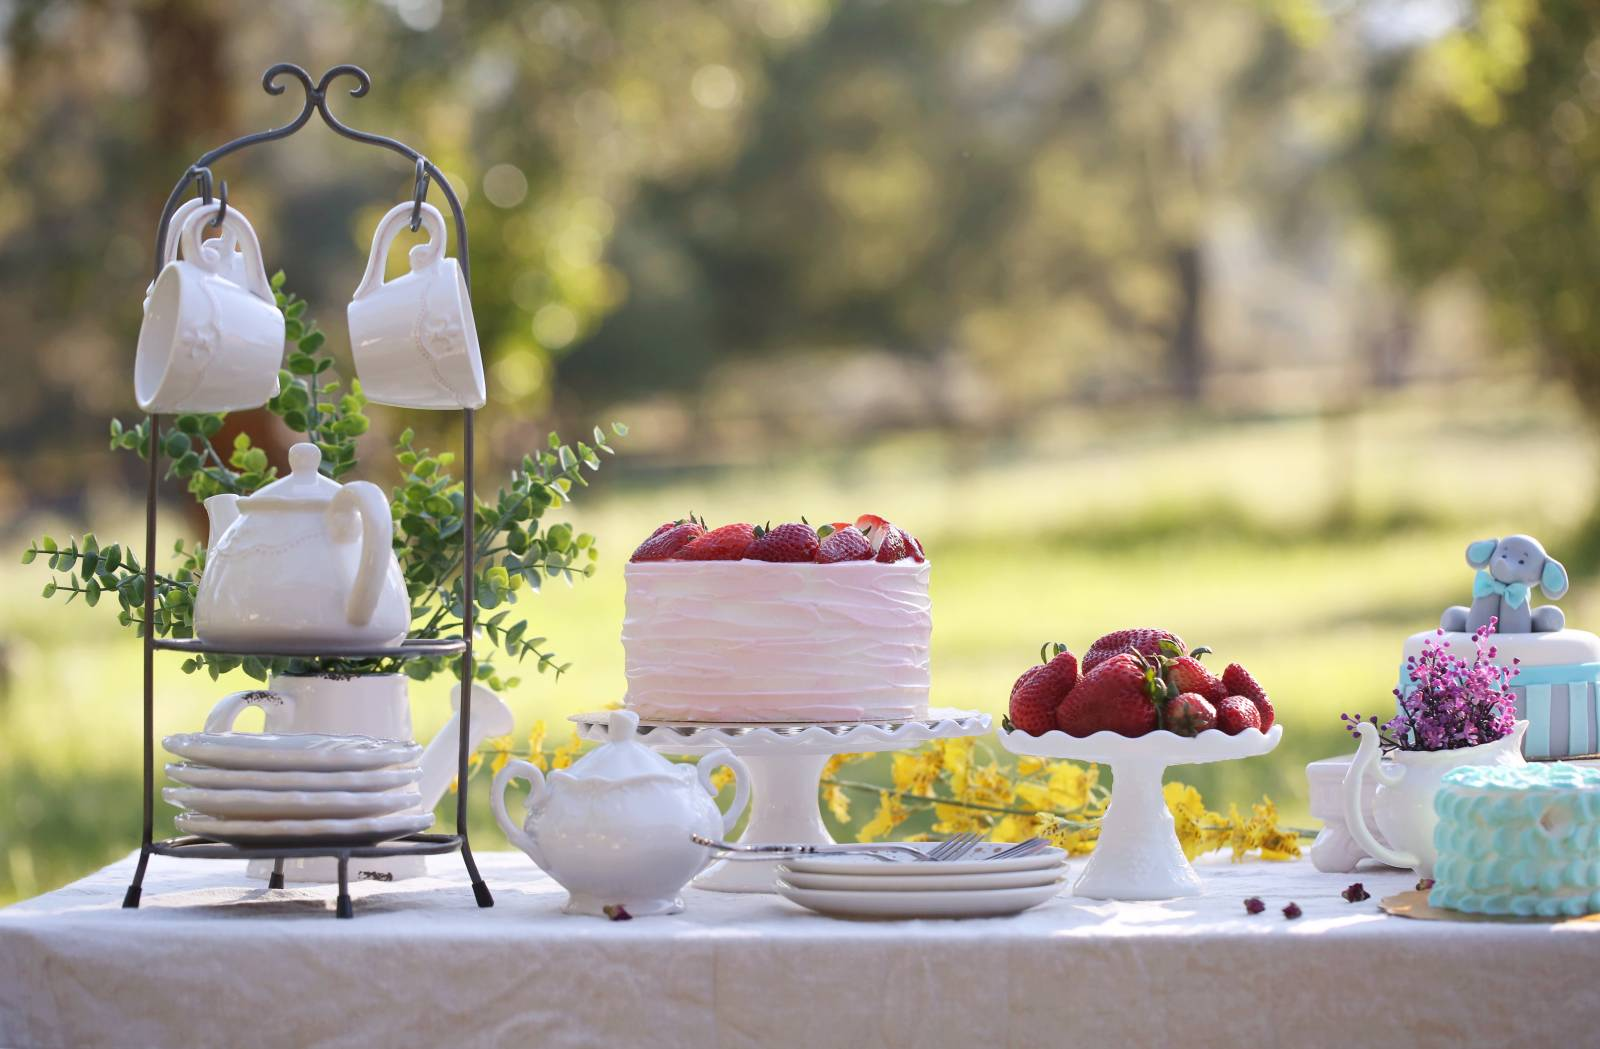 5 Things to Consider When Choosing the Wedding Cake of Your Dreams